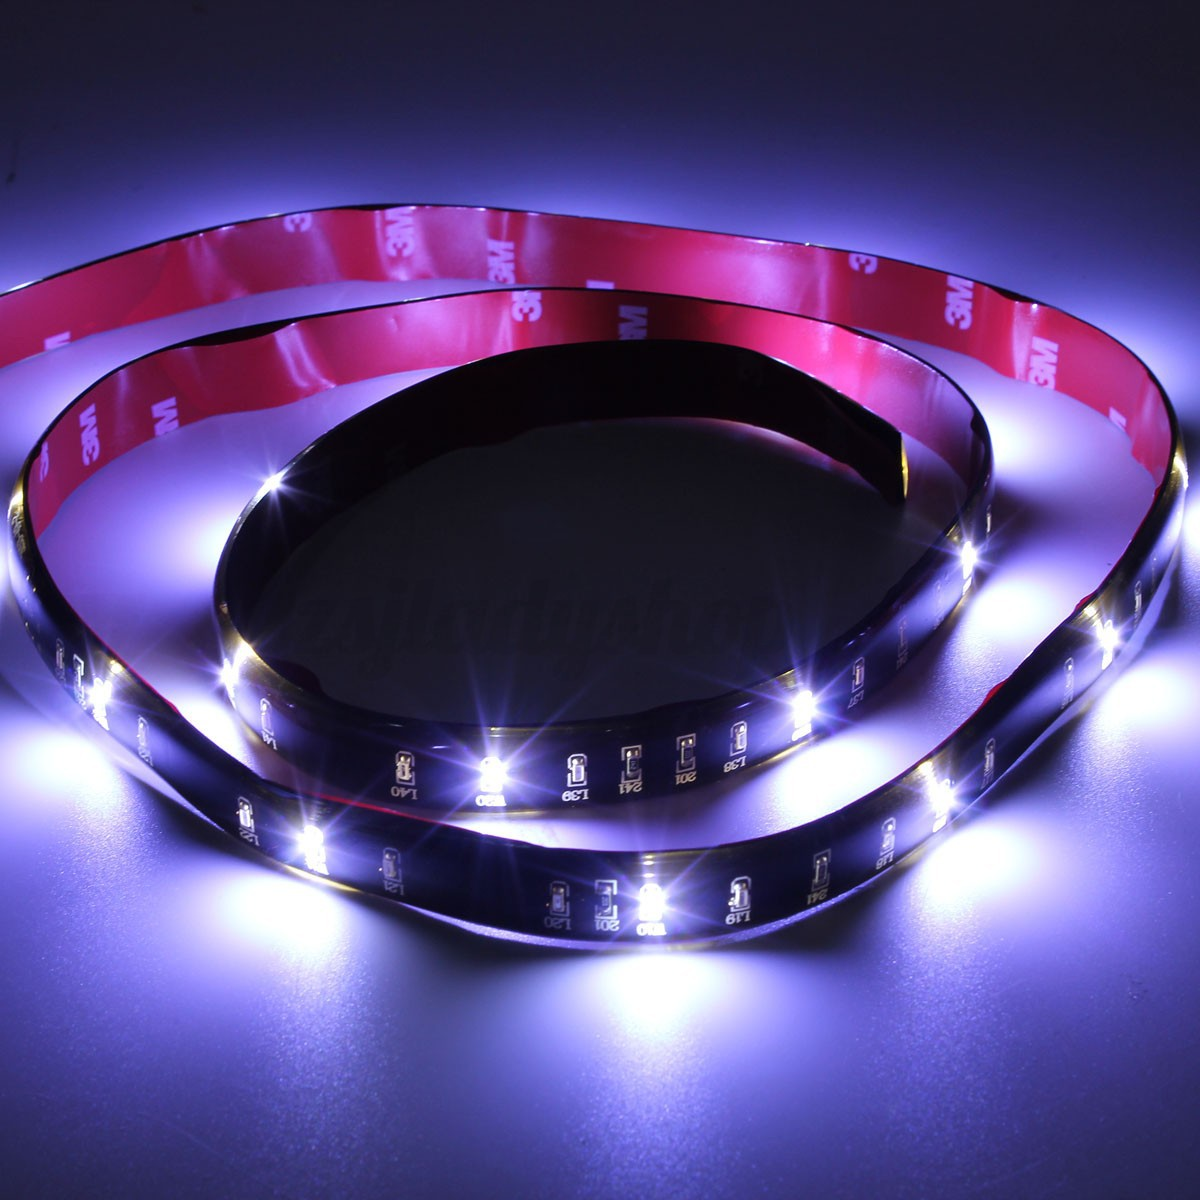 Amazoncom: tailgate led light strip